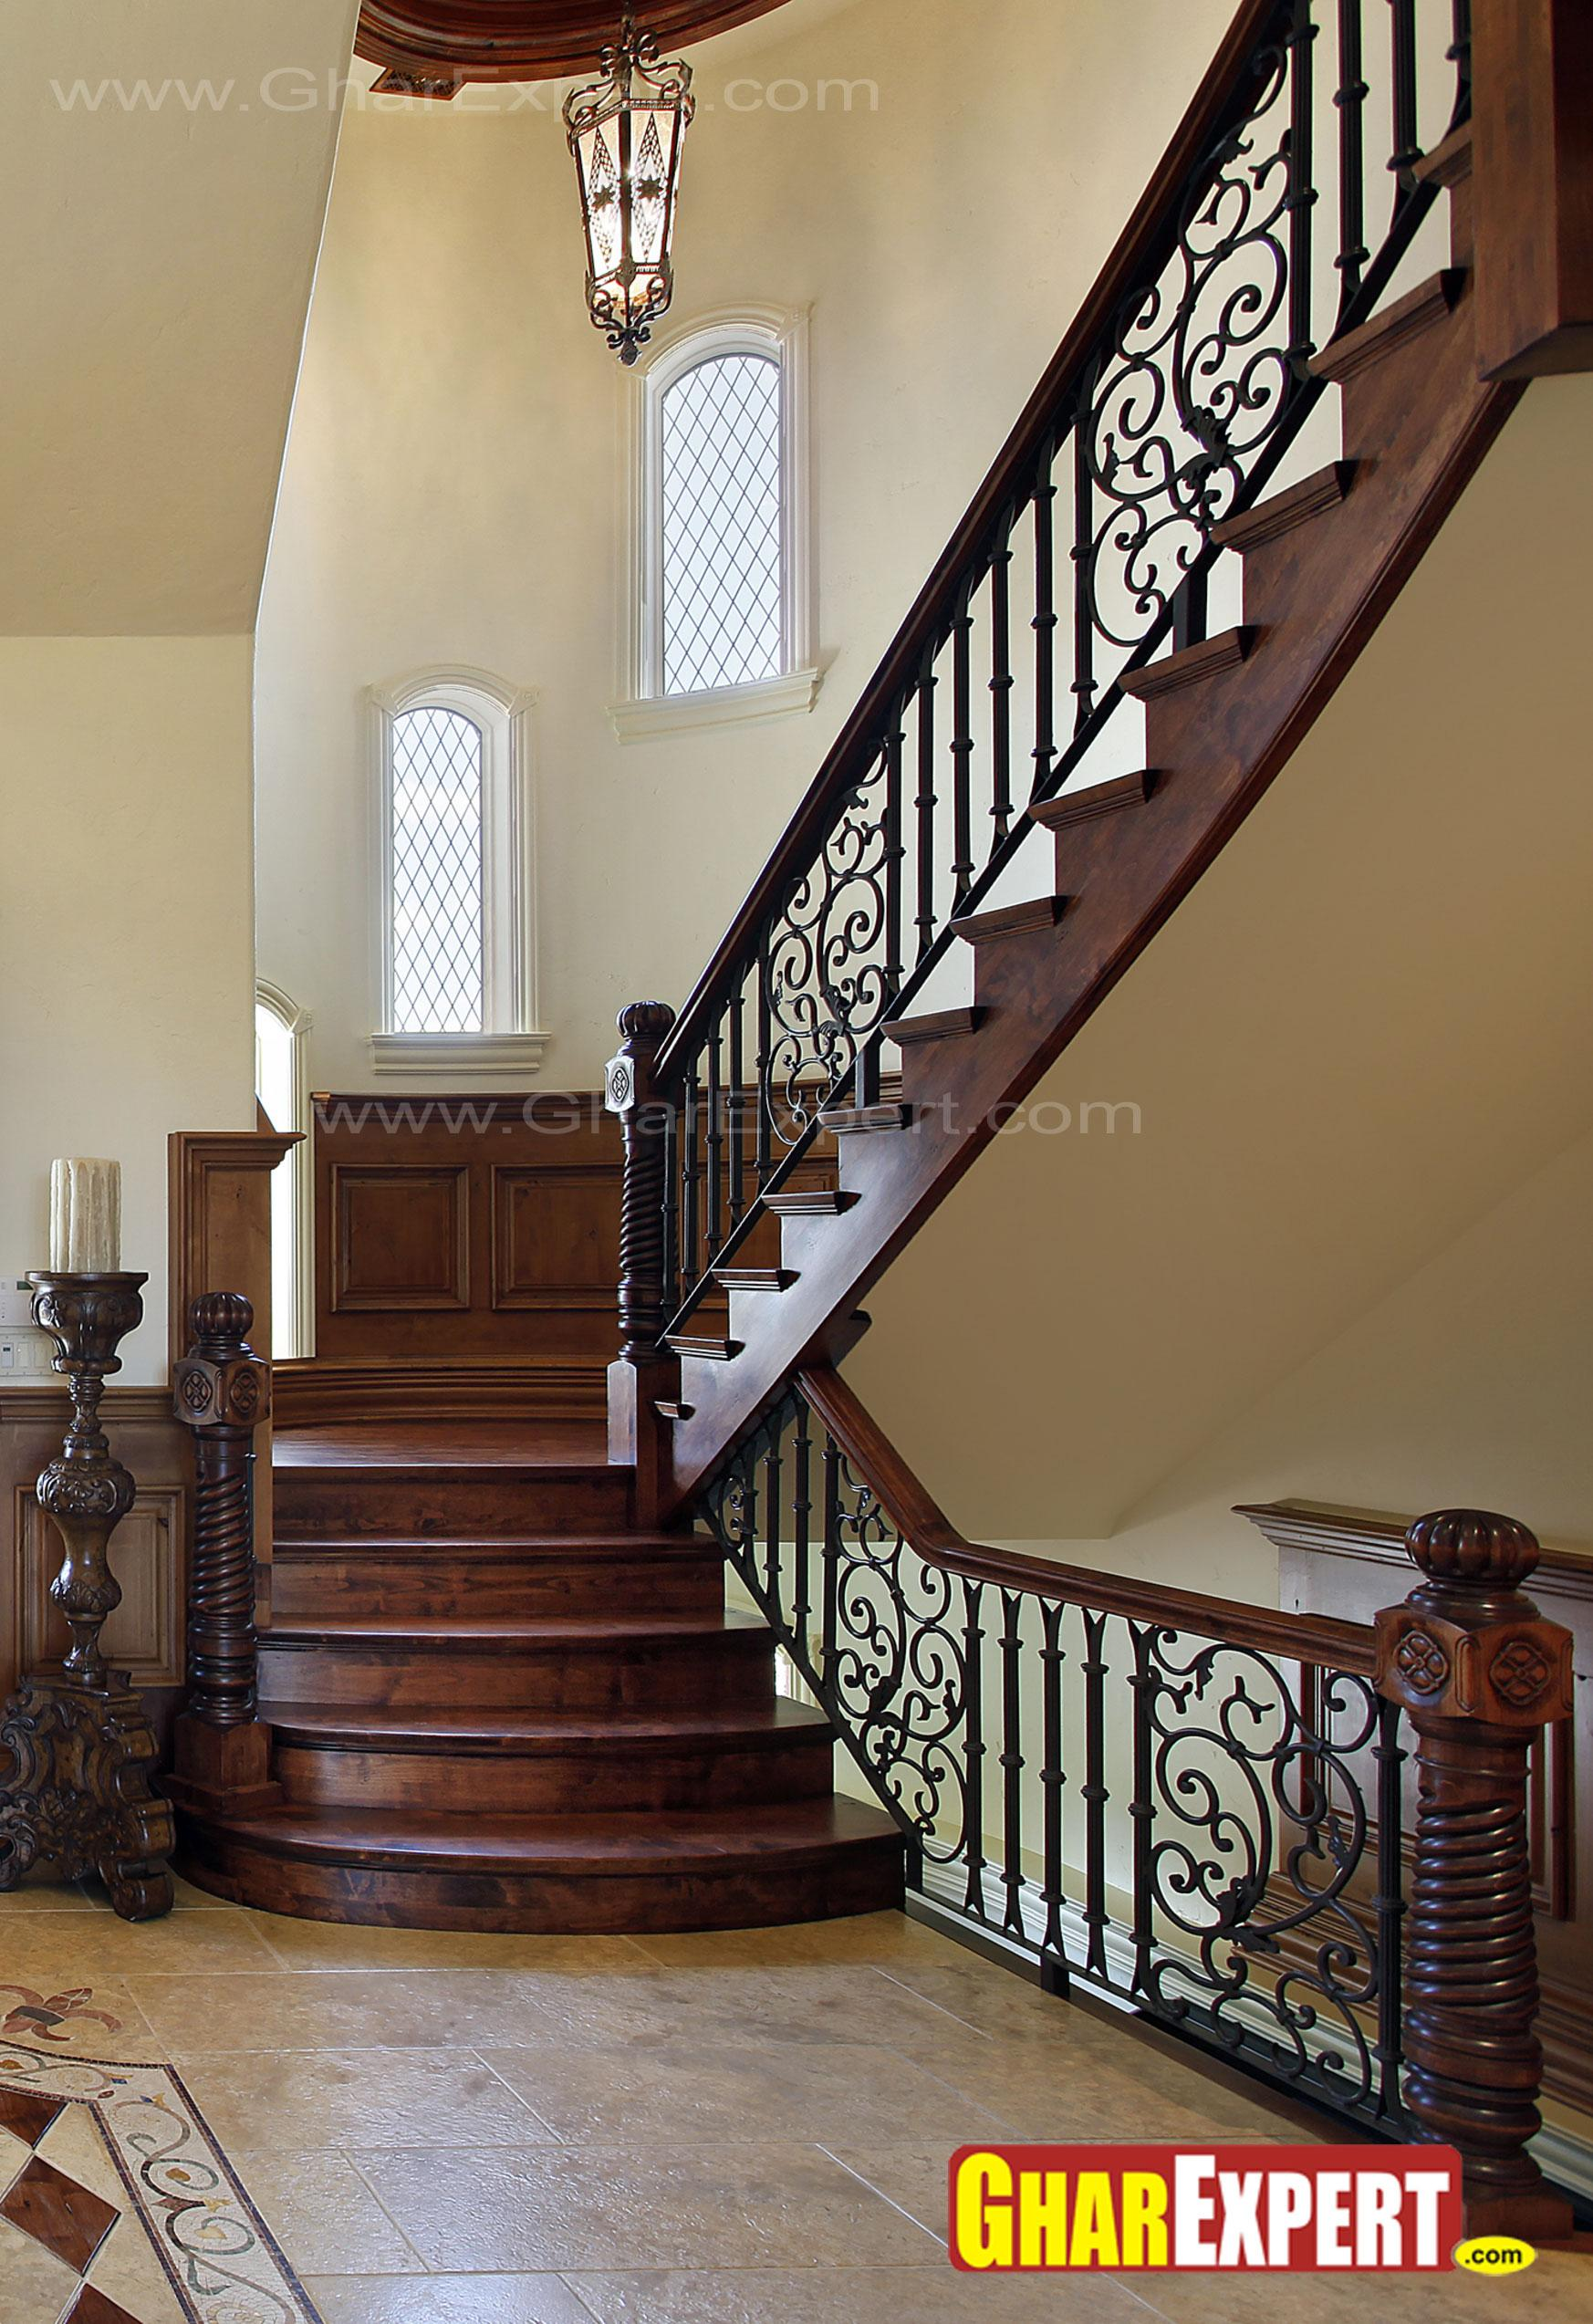 Wooden stairs railing design gharexpert